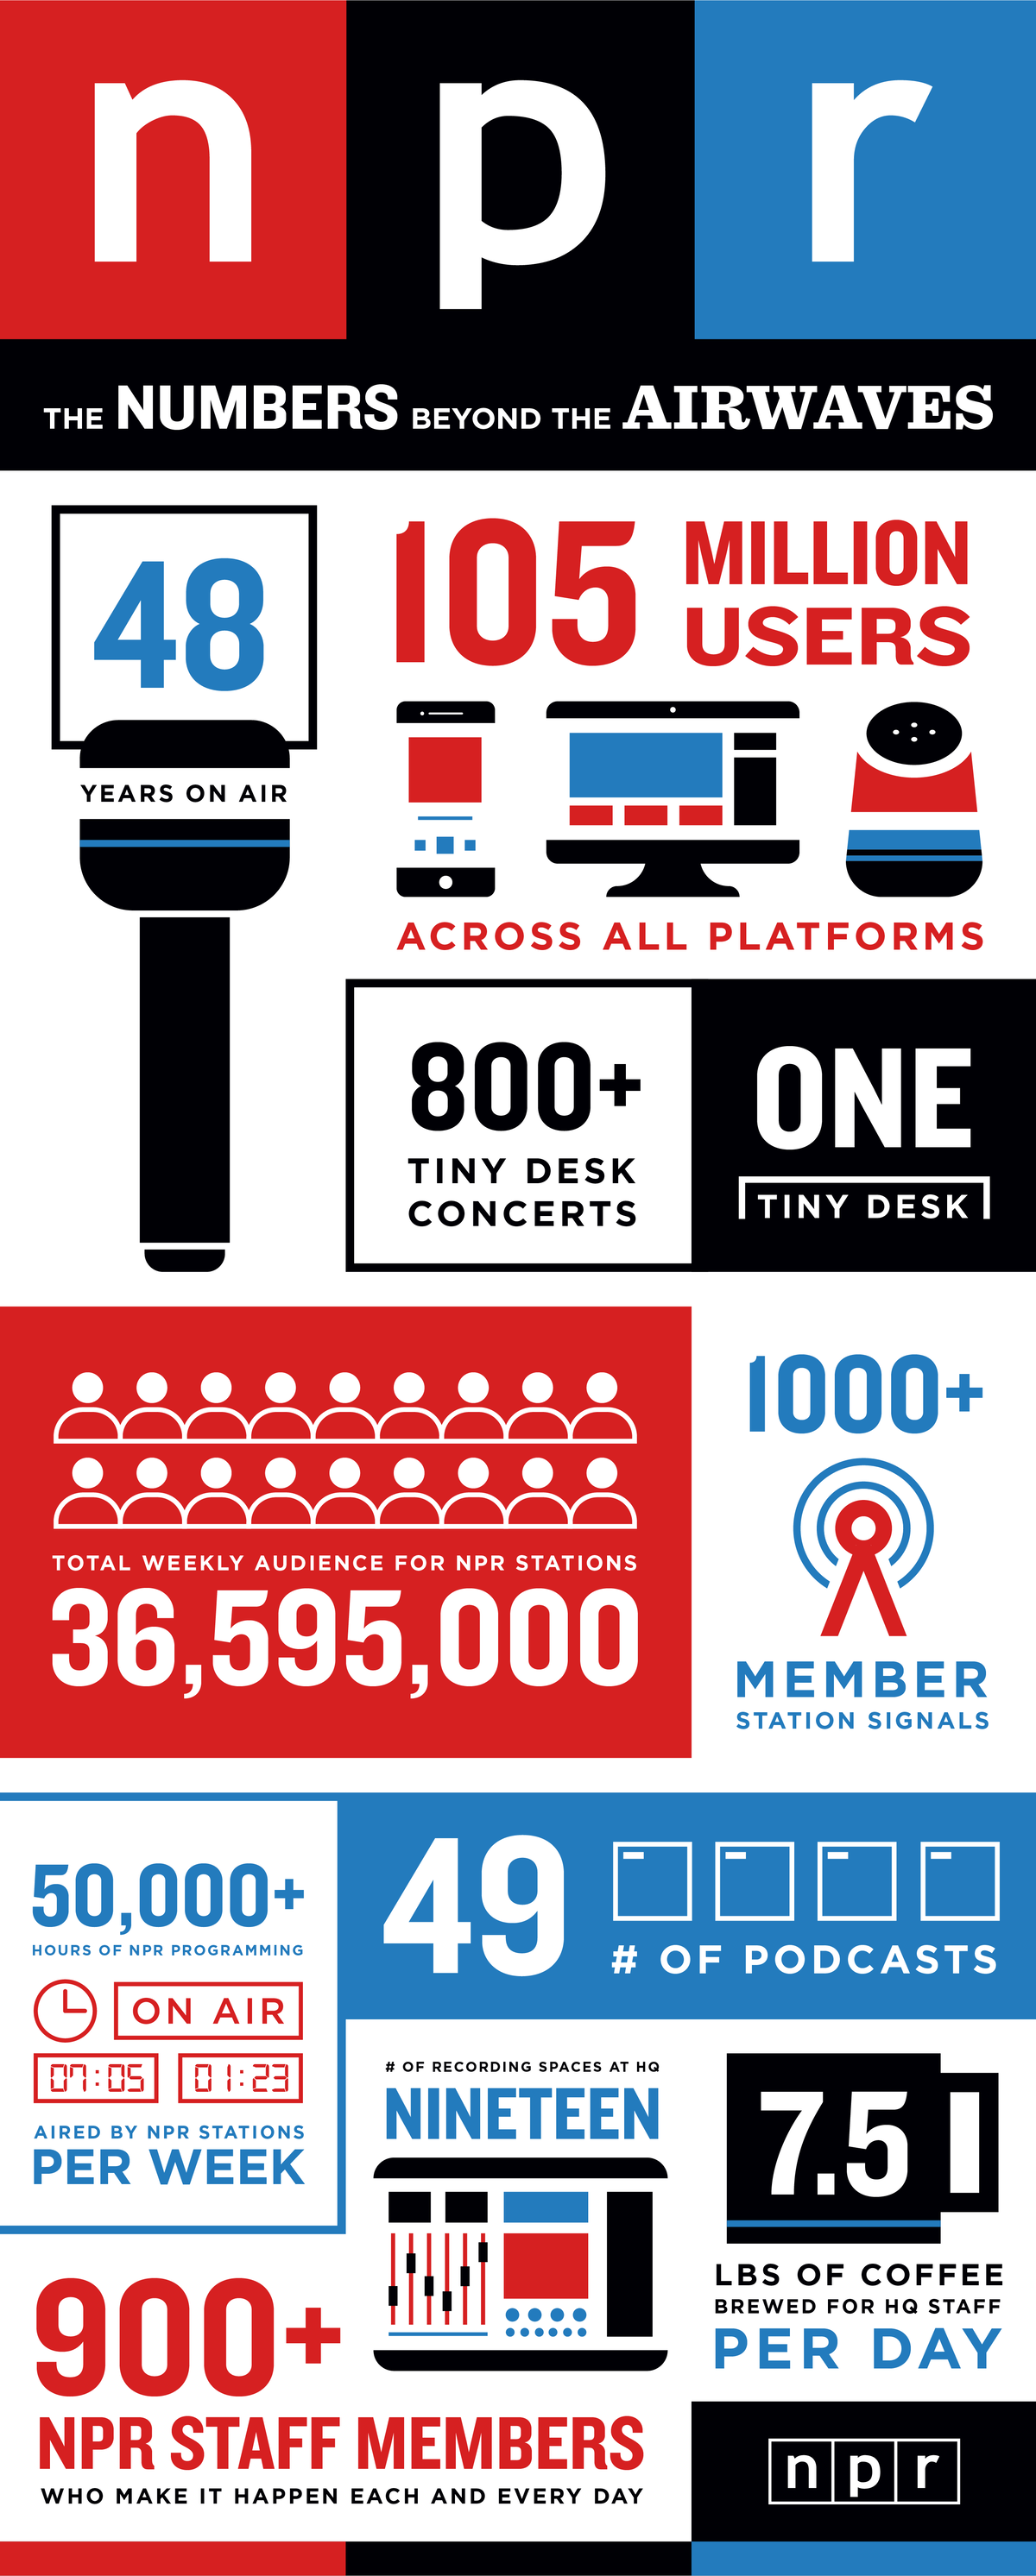 NPR Infographic: The Numbers Beyond the Airwaves